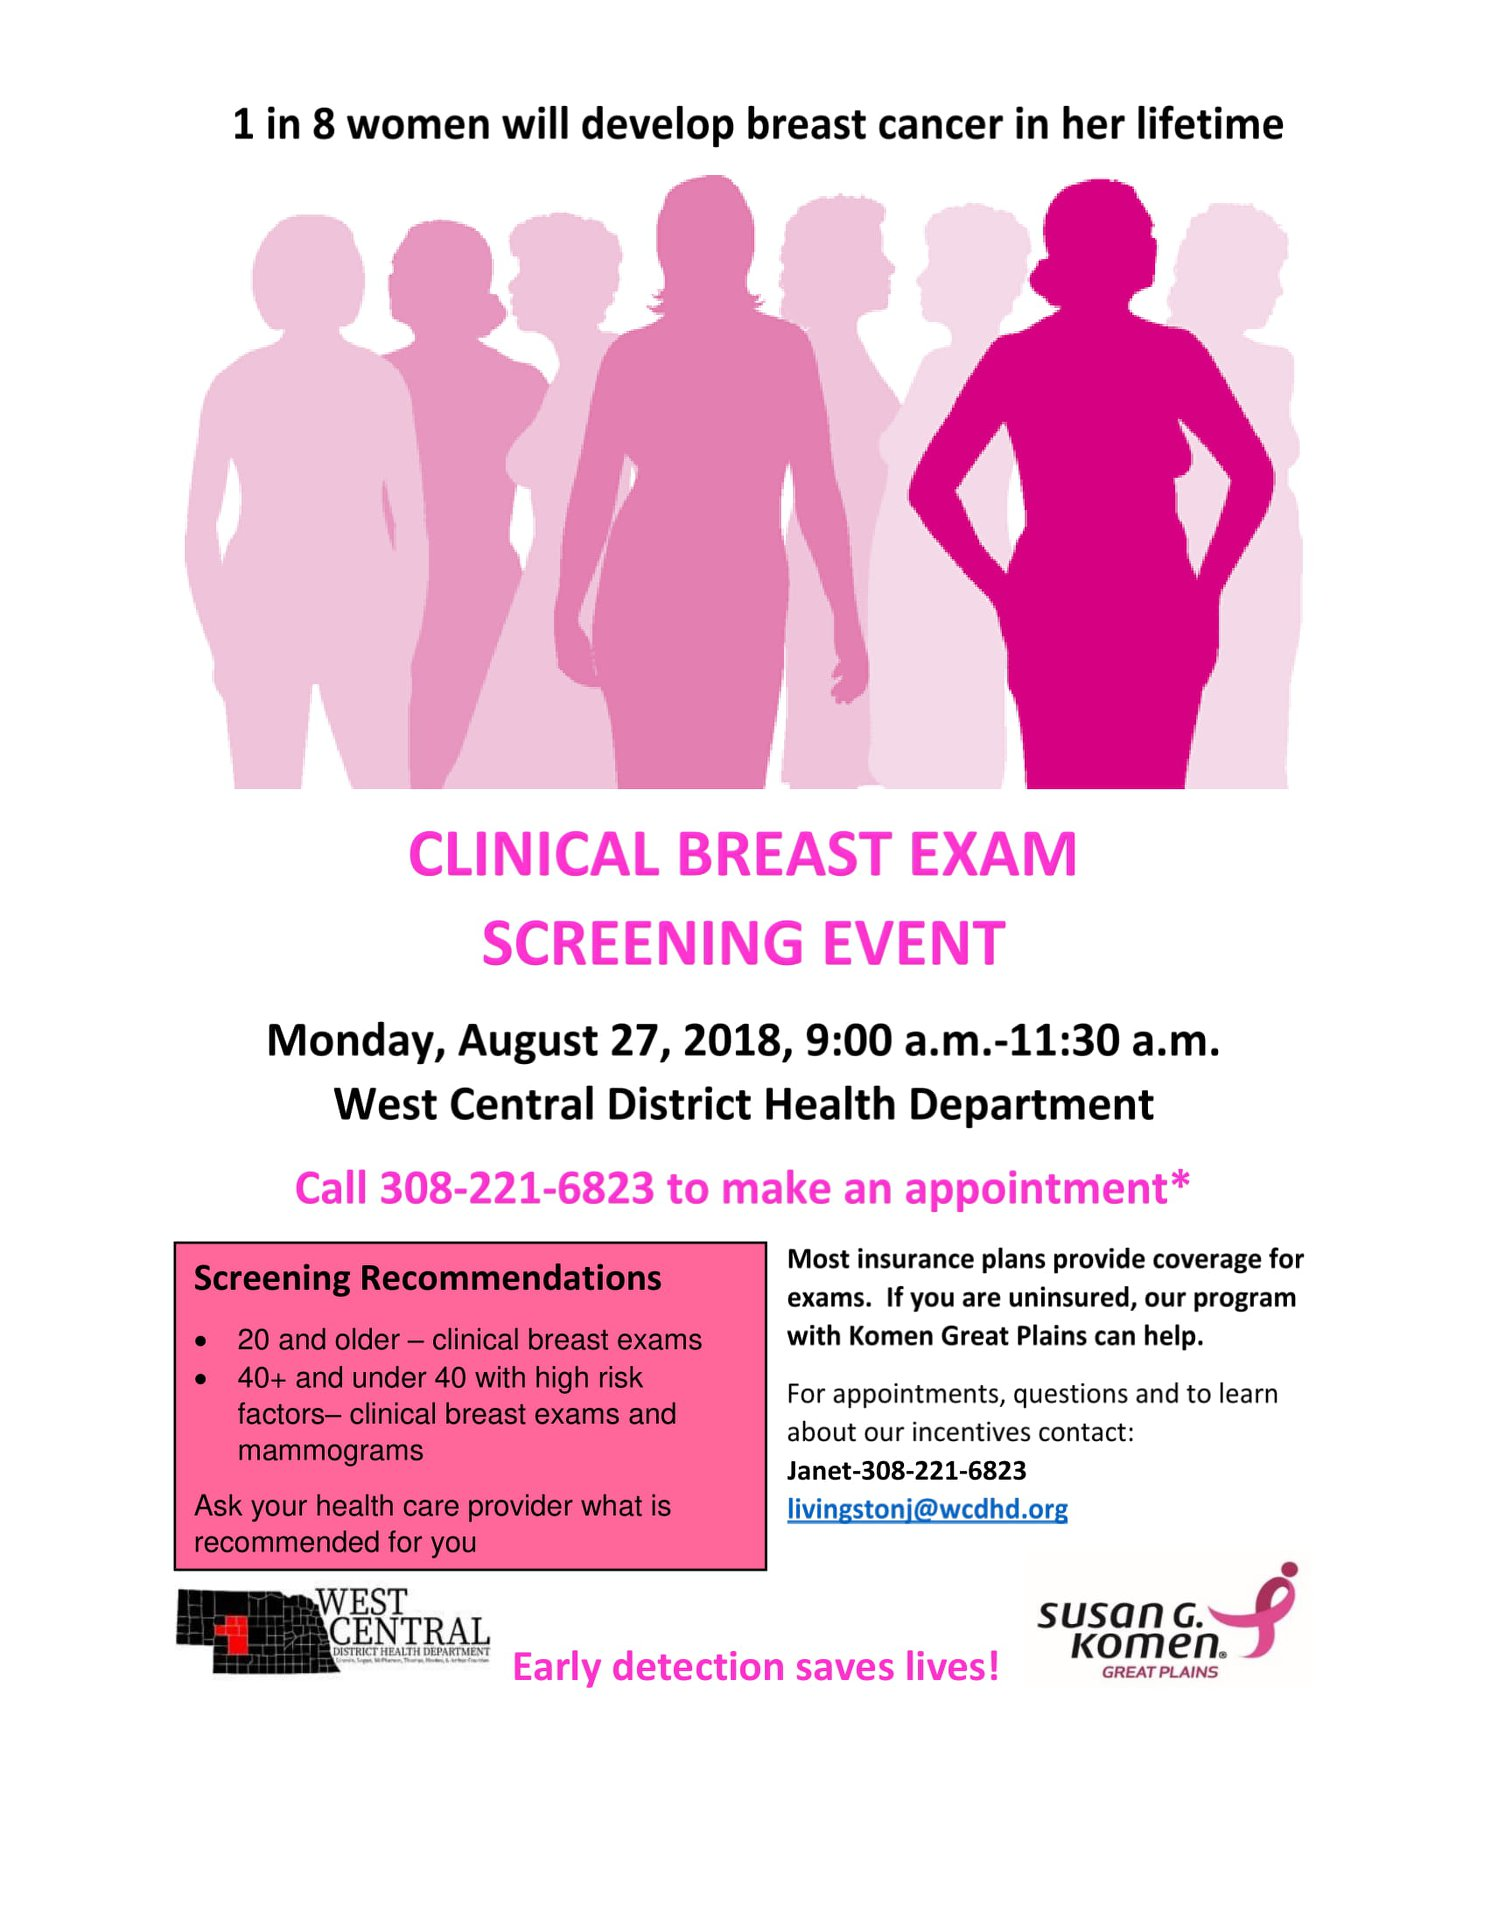 Clinical Breast Exam Screening Event